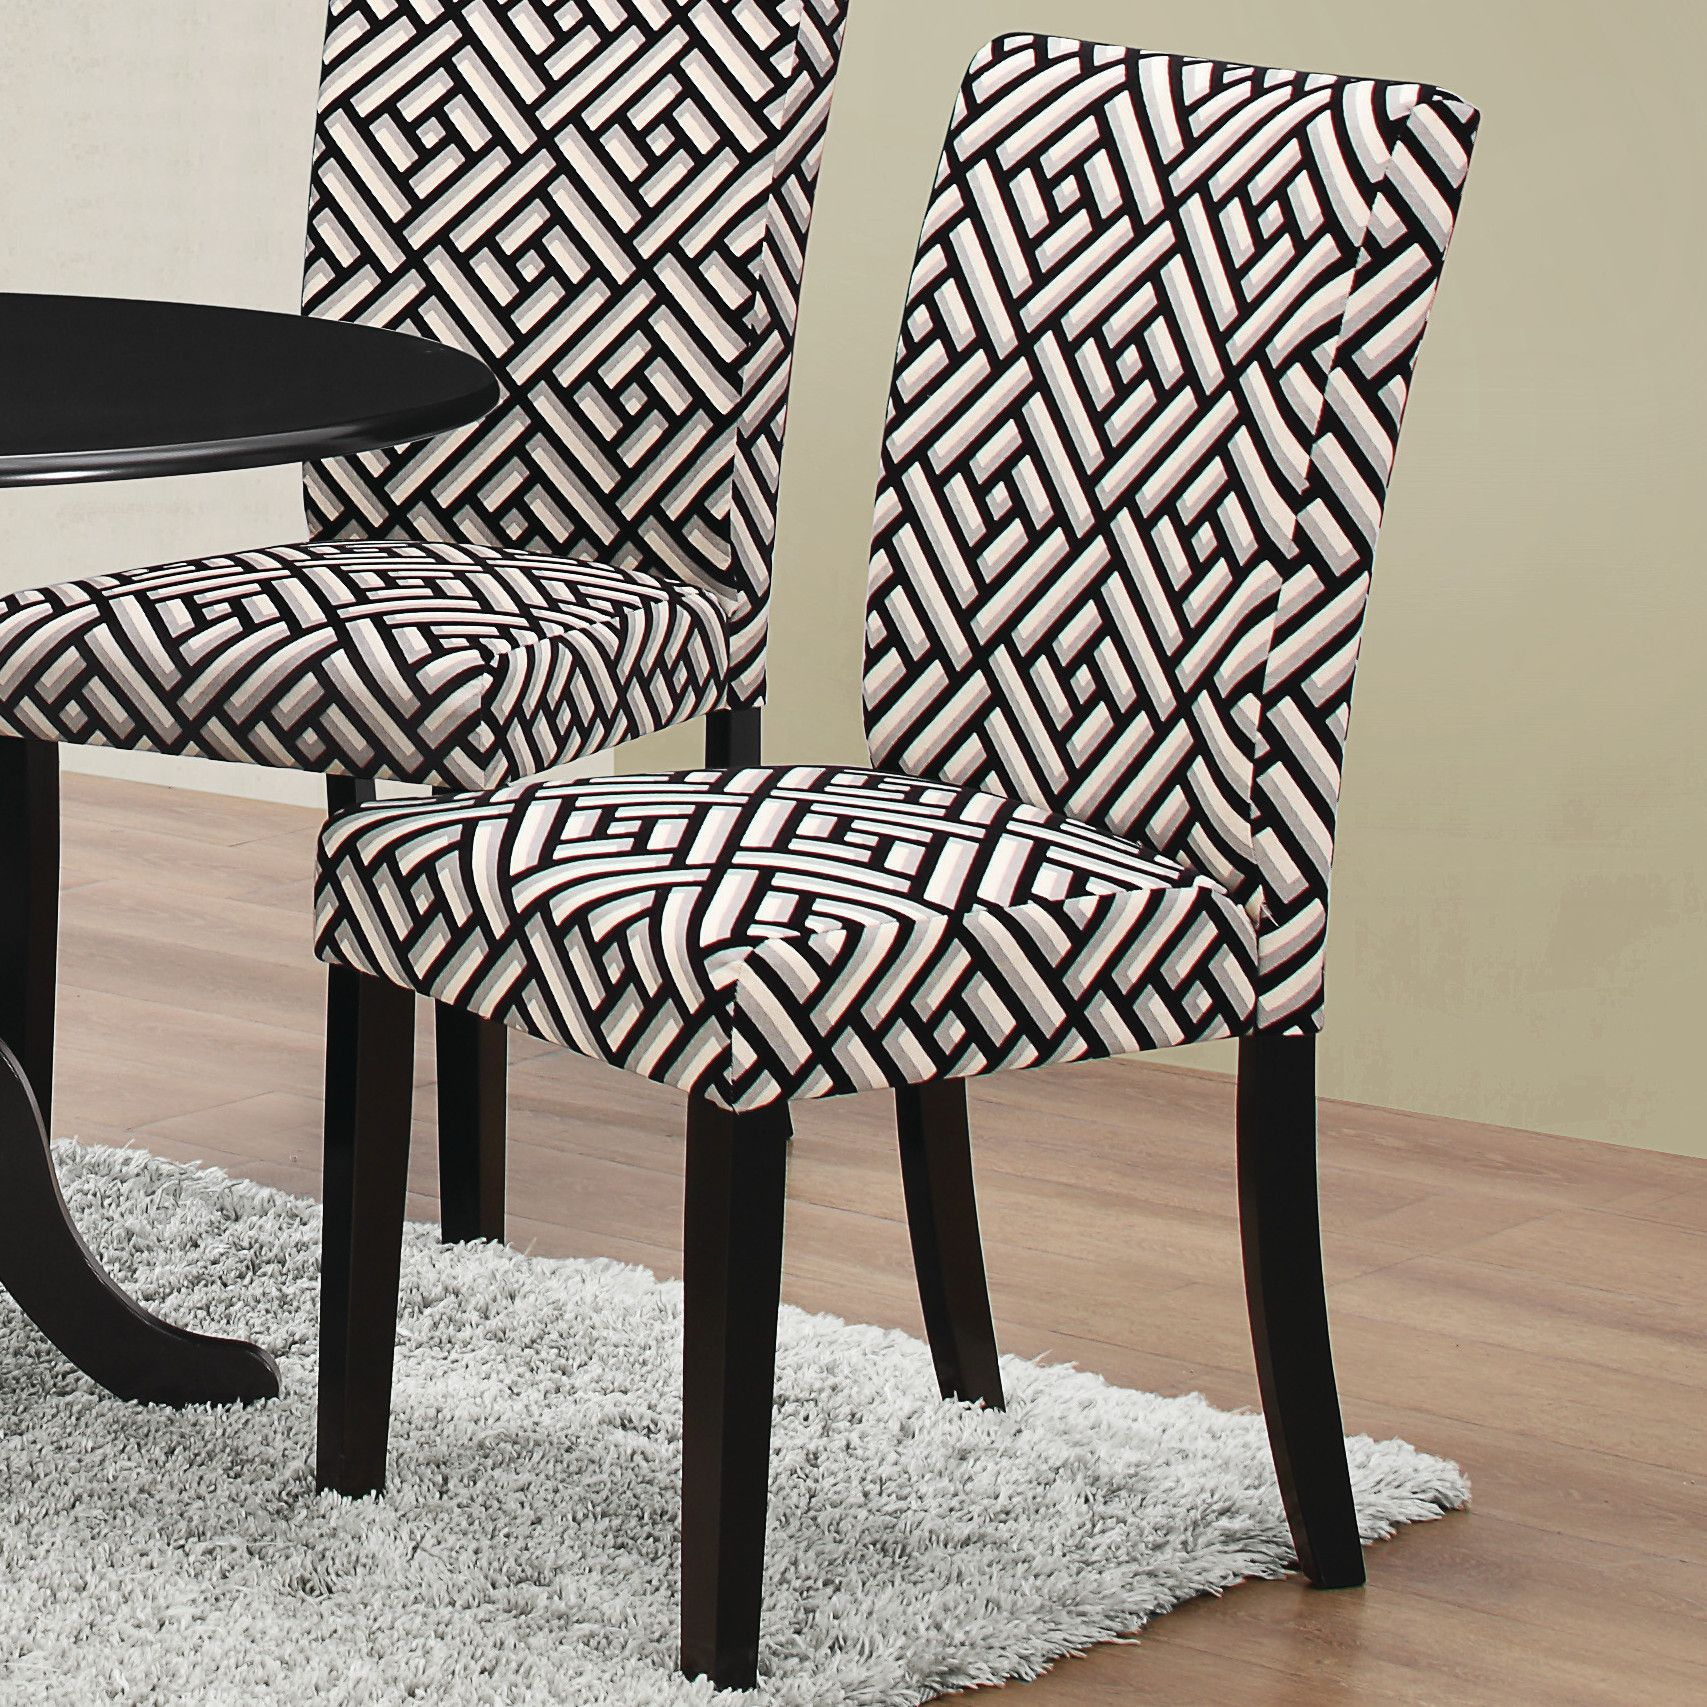 Omie Solid Wood Dining Chair (Set of 2) | Dining chairs ...